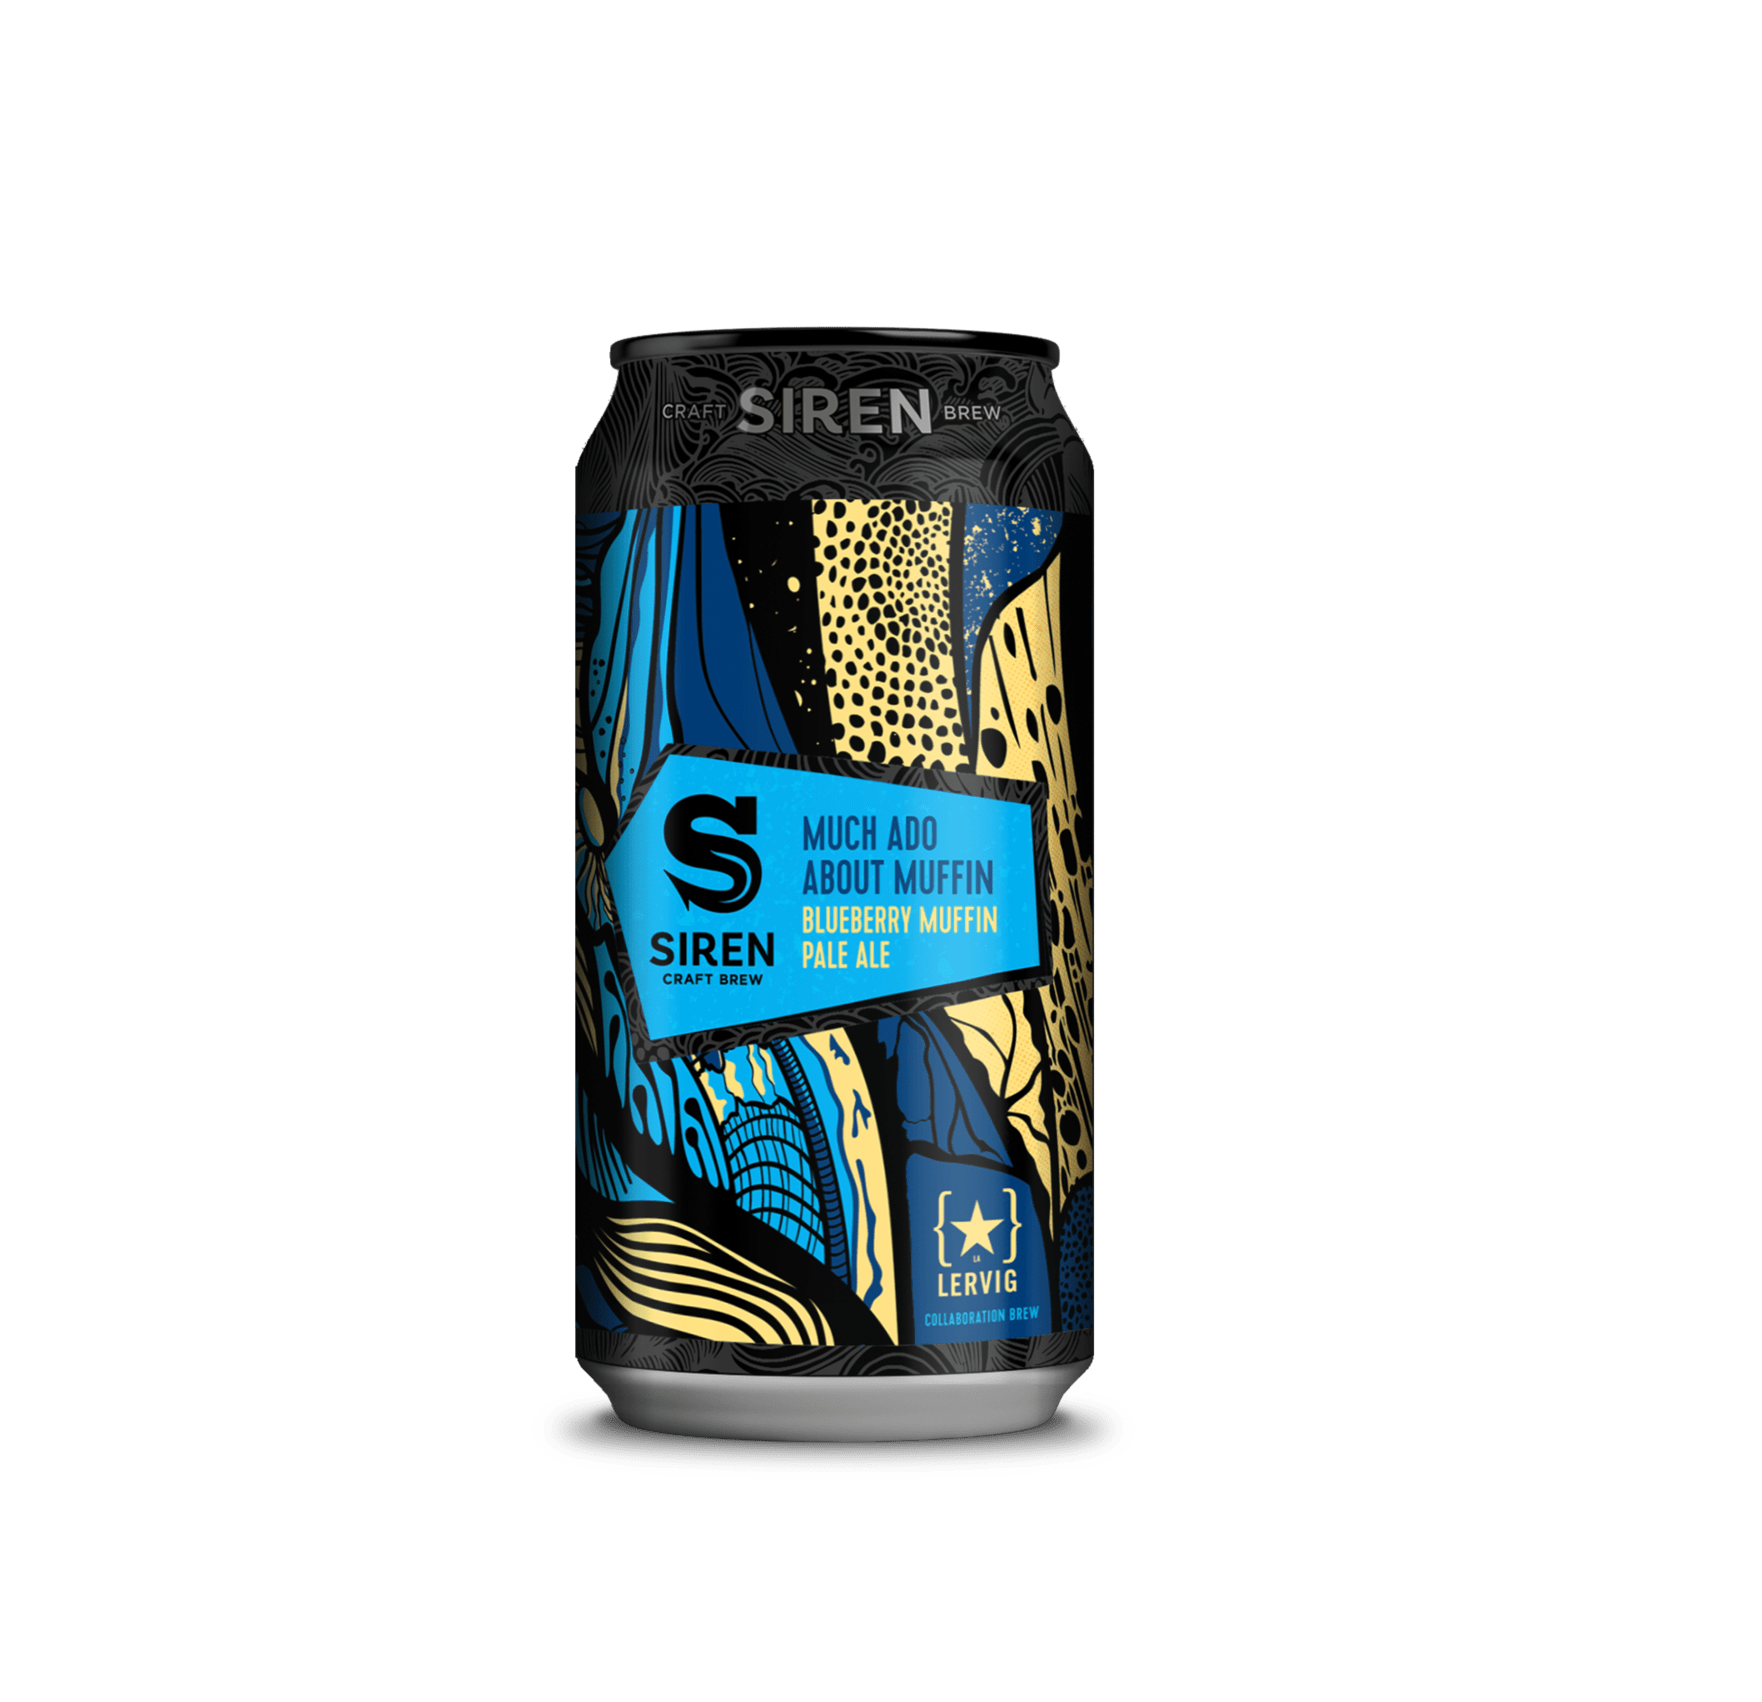 Siren x Lervig | Much Ado About Muffin | Blueberry Muffin Pale Ale 5.5% 440ml